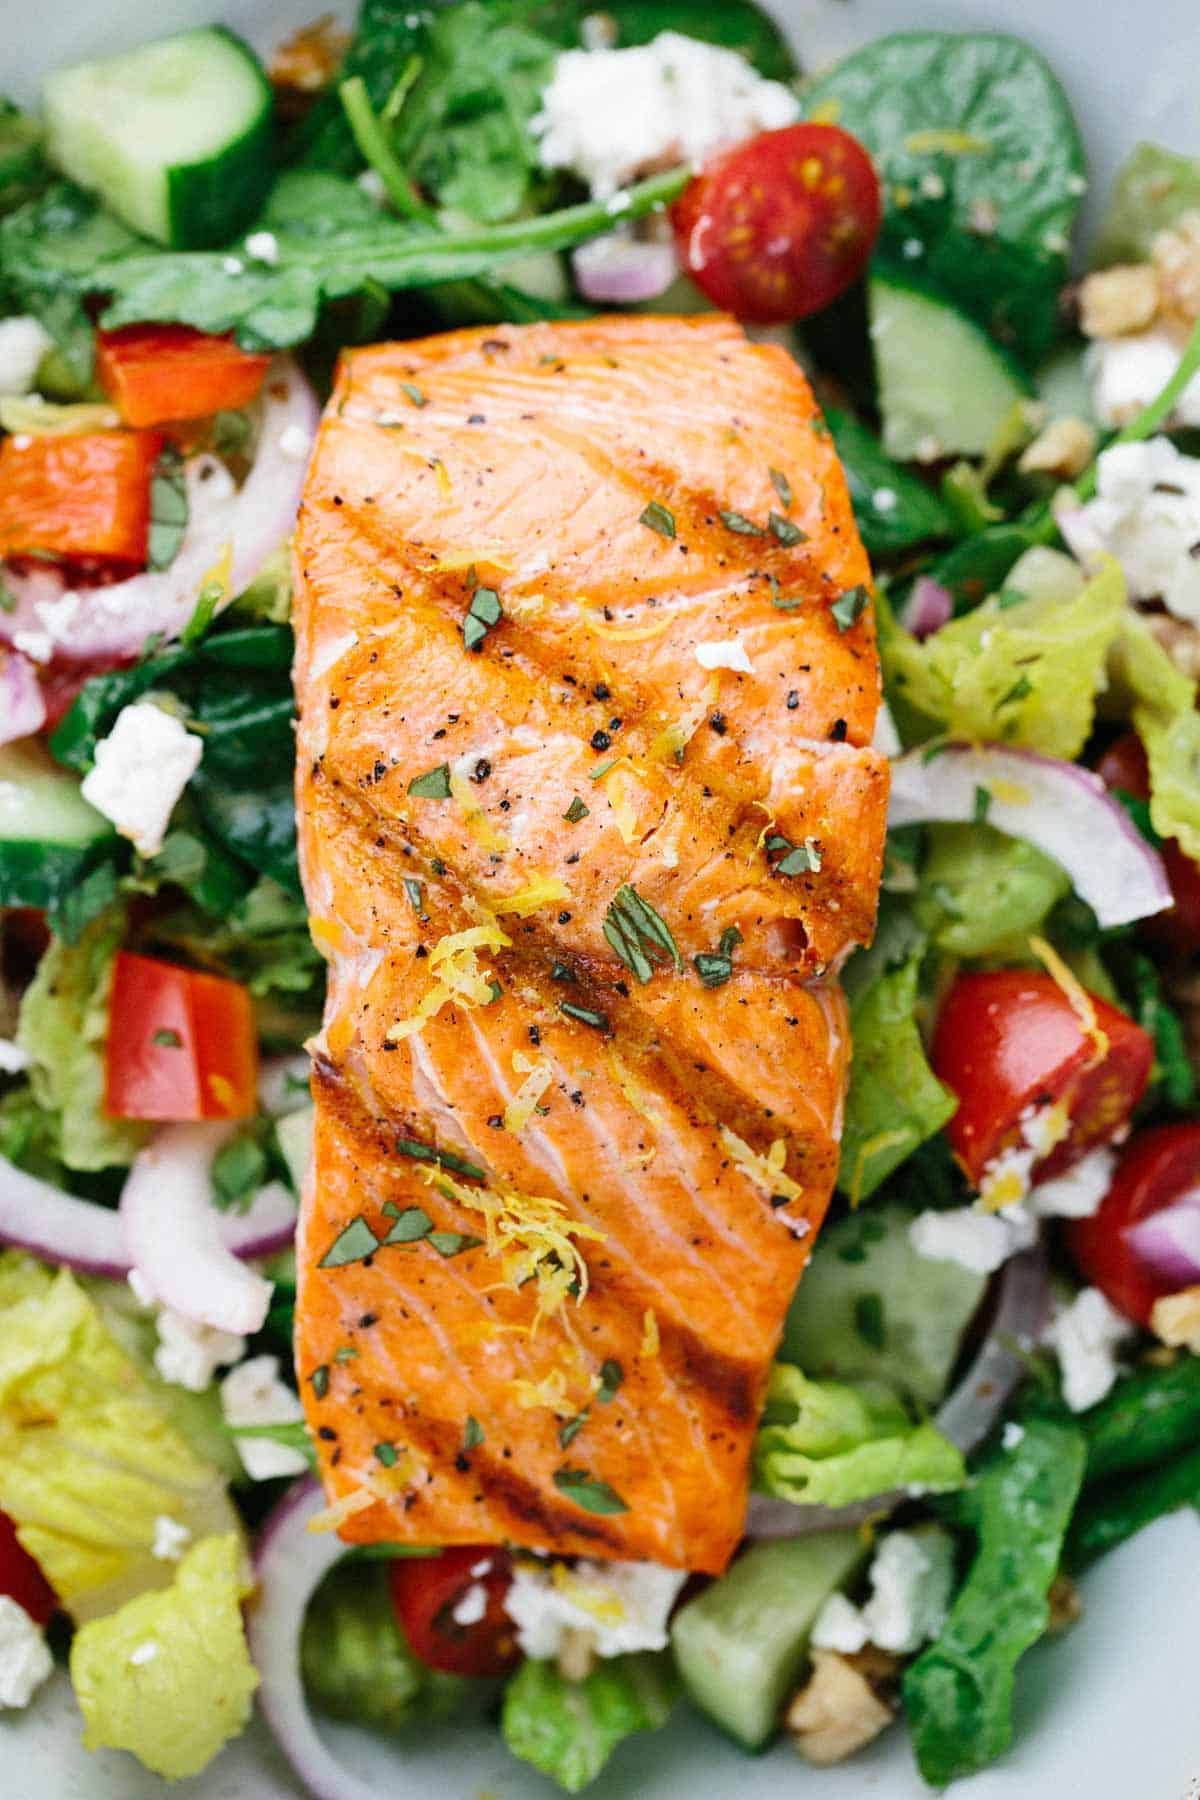 Glazed Salmon on Greens and Orange Salad forecast